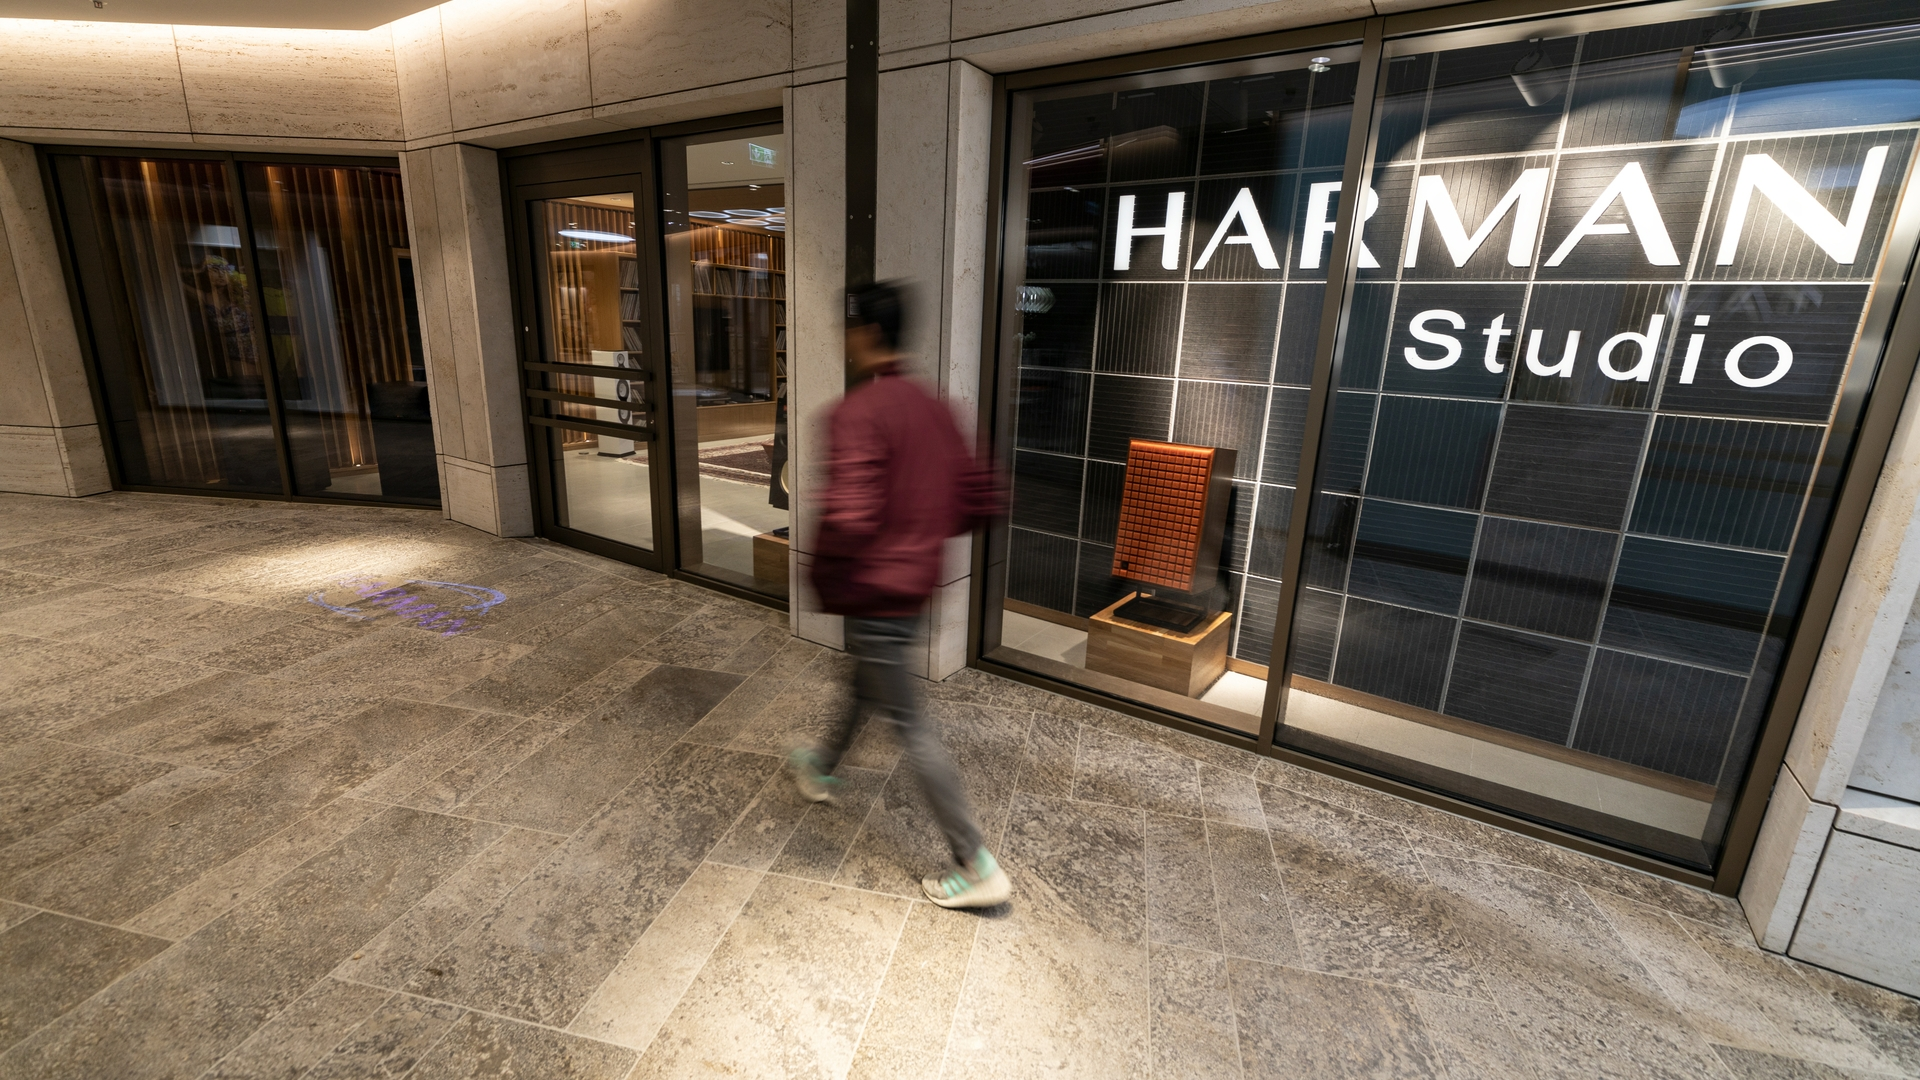 High End 2019 & HARMAN Luxury Audio Studio Opening